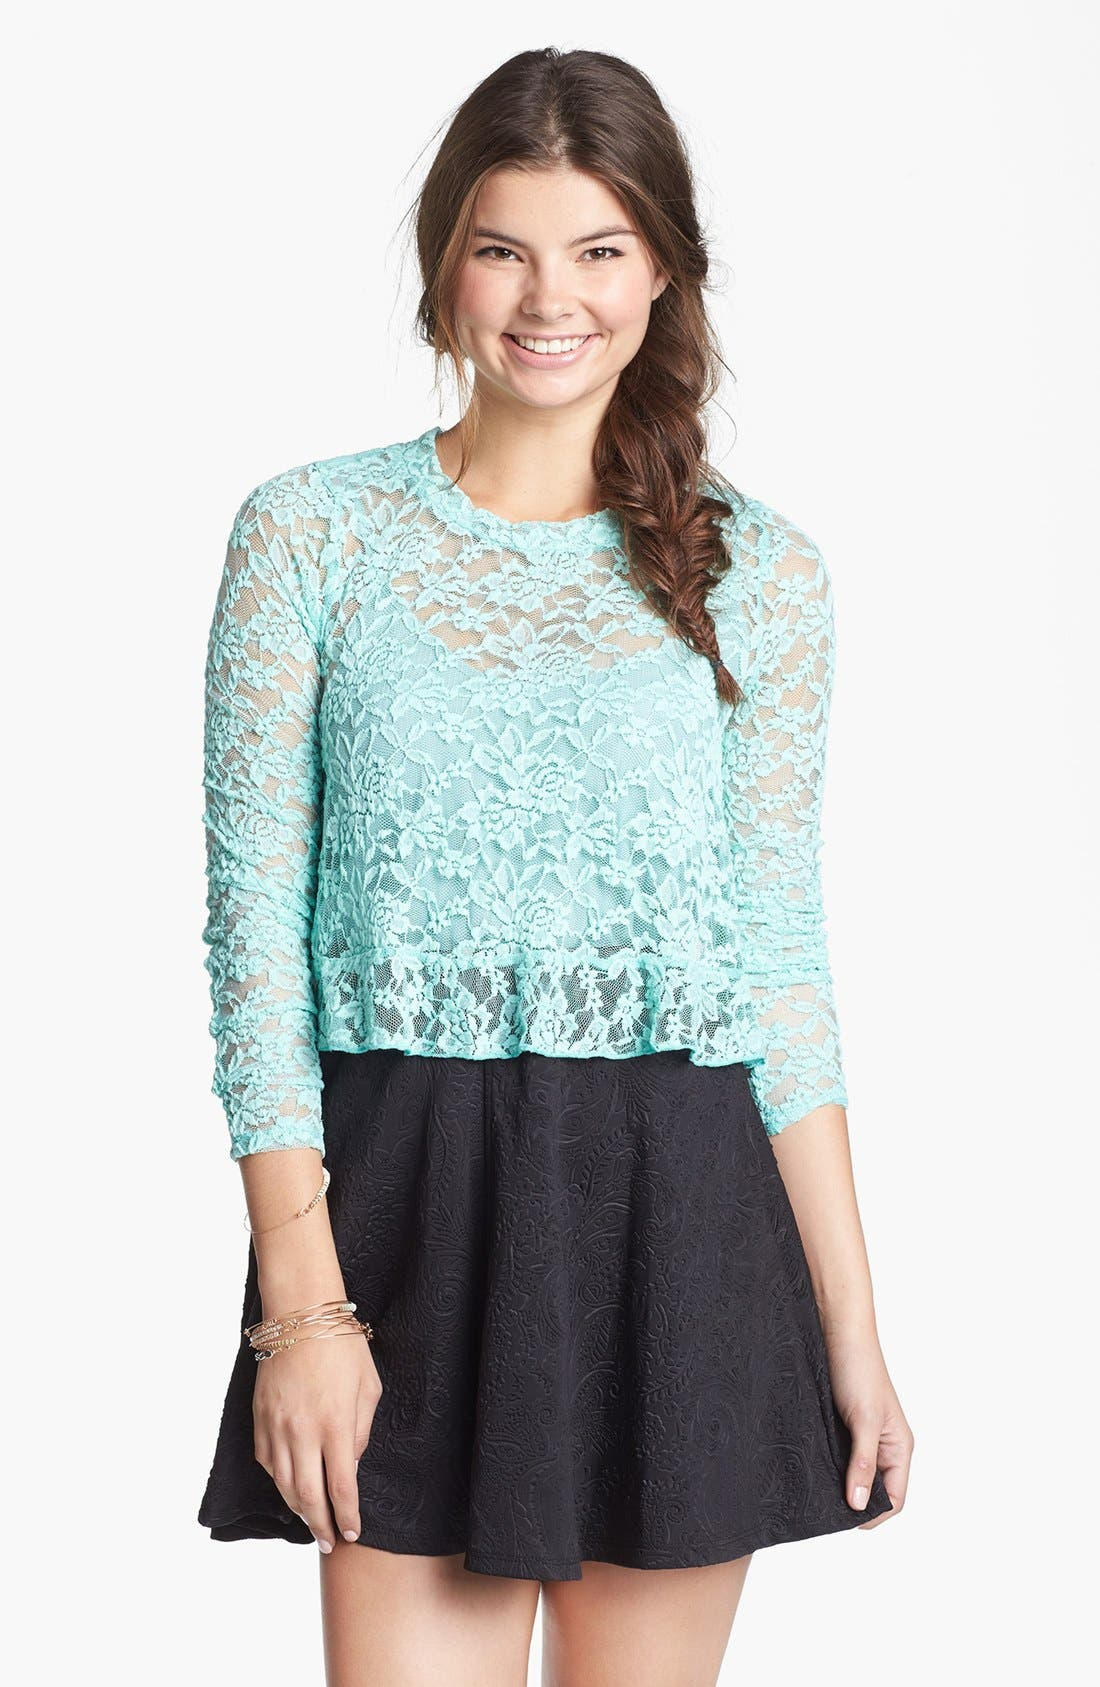 Main Image - Lily White Lace Peplum Crop Top (Juniors) (Online Only)